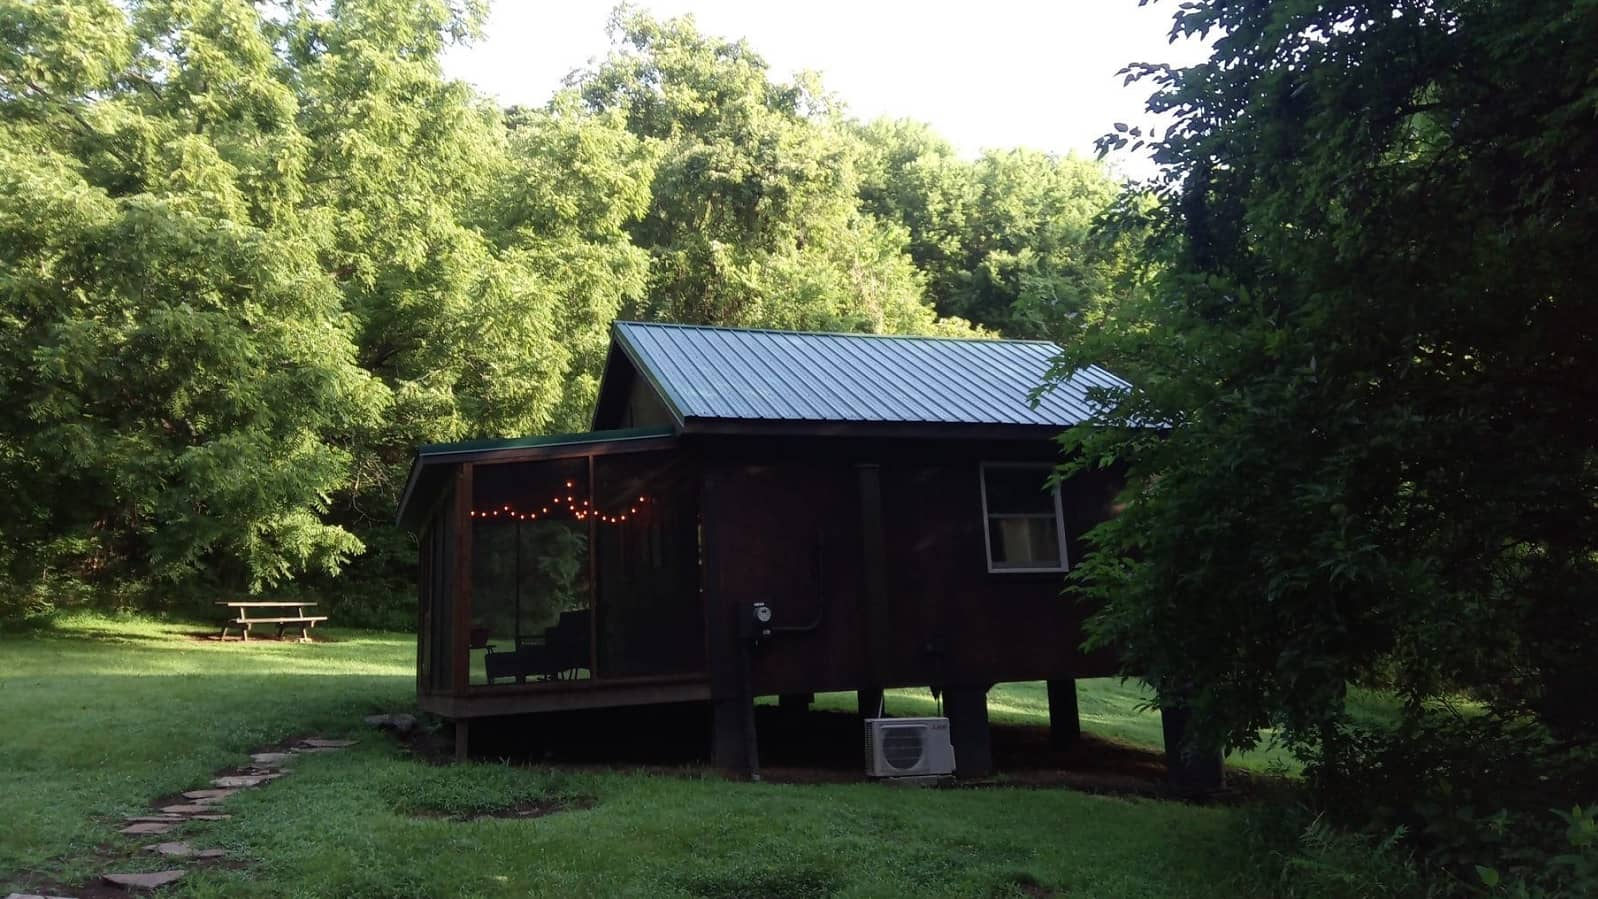 cabin in the woods without wi-fi